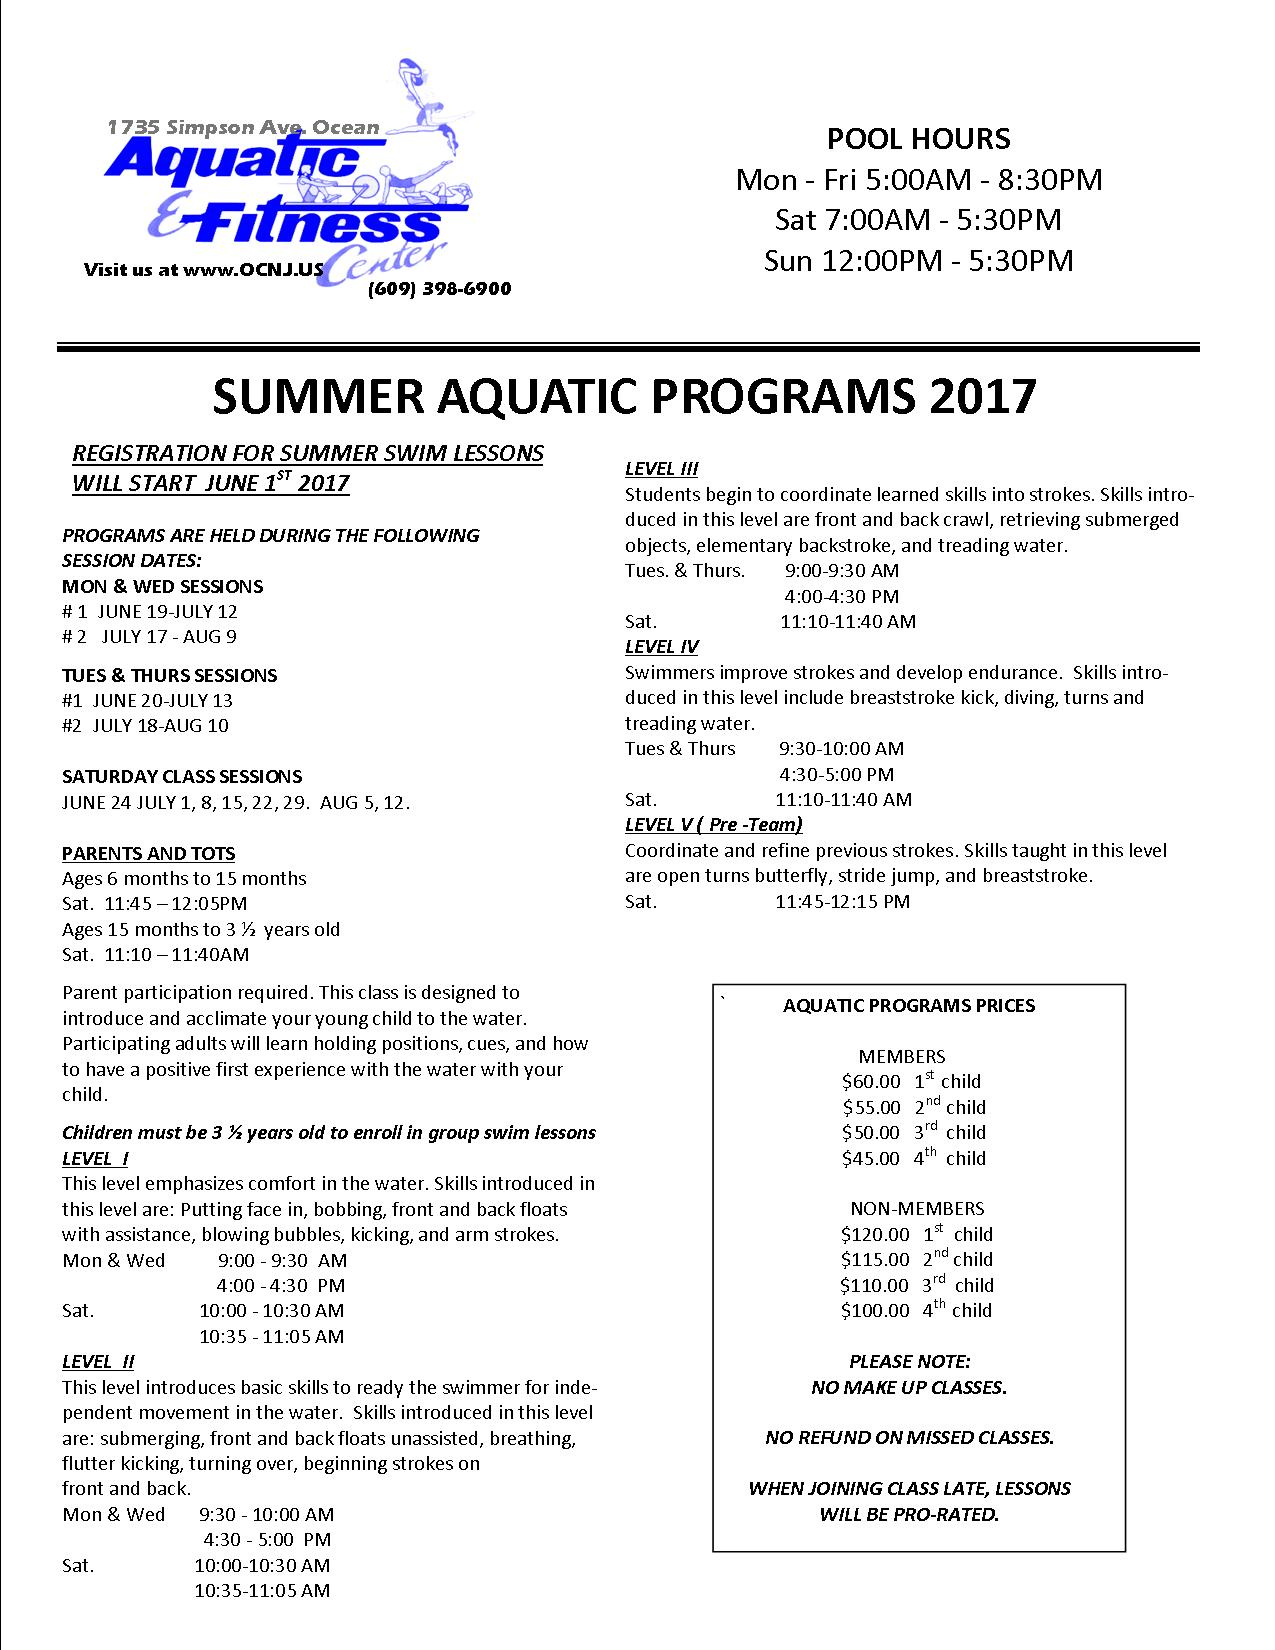 Aquatic fitness center faq summer swim flyer xflitez Gallery